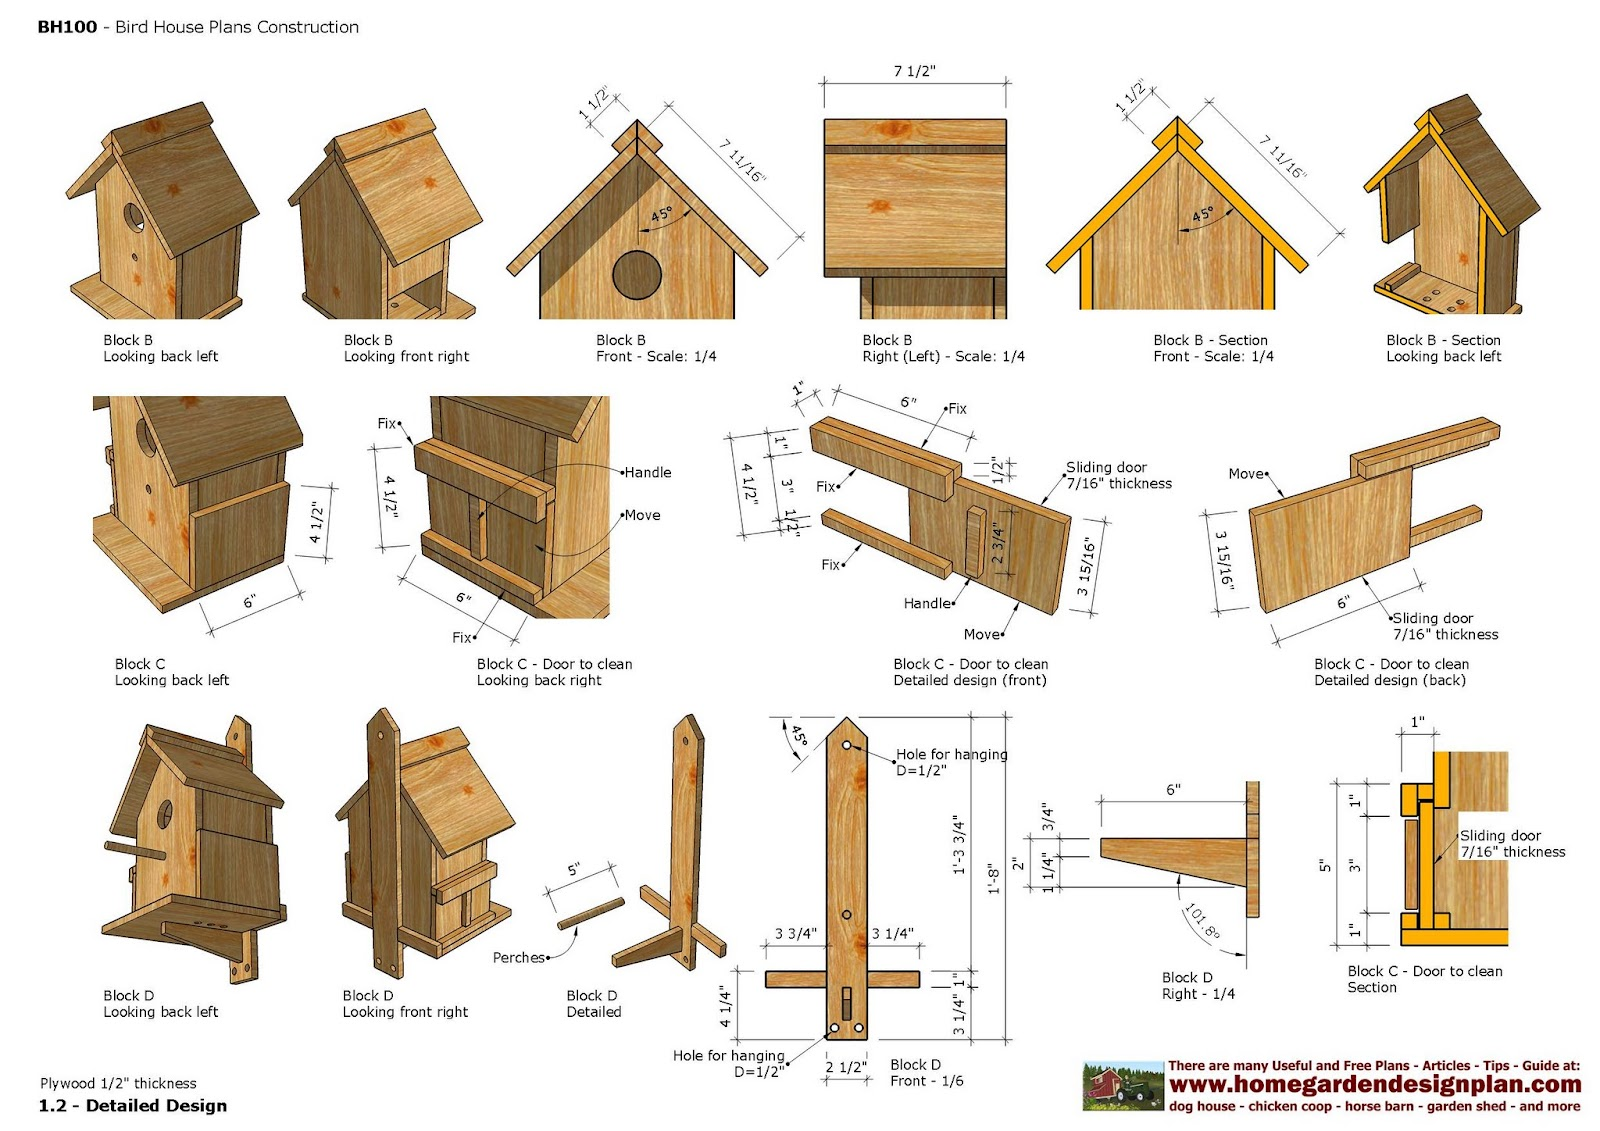 Home garden plans bh bird house plans construction for Construction house plans